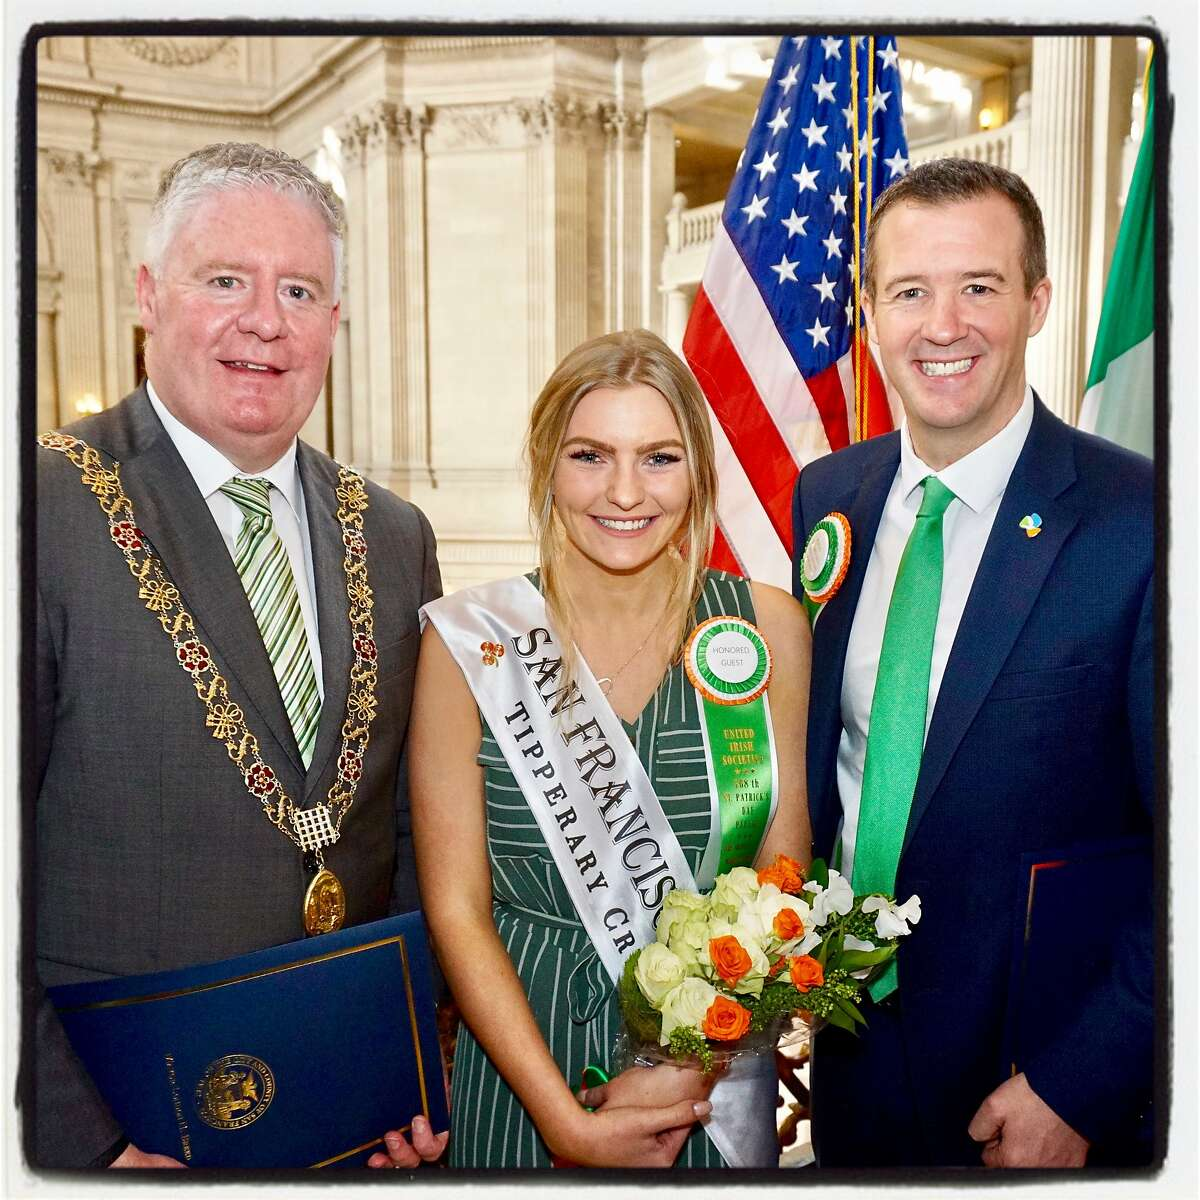 Lord Mayor of Cork Mick Flynn (left) with Rose of Tralee winner Brooklynn Quinn and Irish Consul General Robert O'Driscoll at City Hall. March 8, 2019.